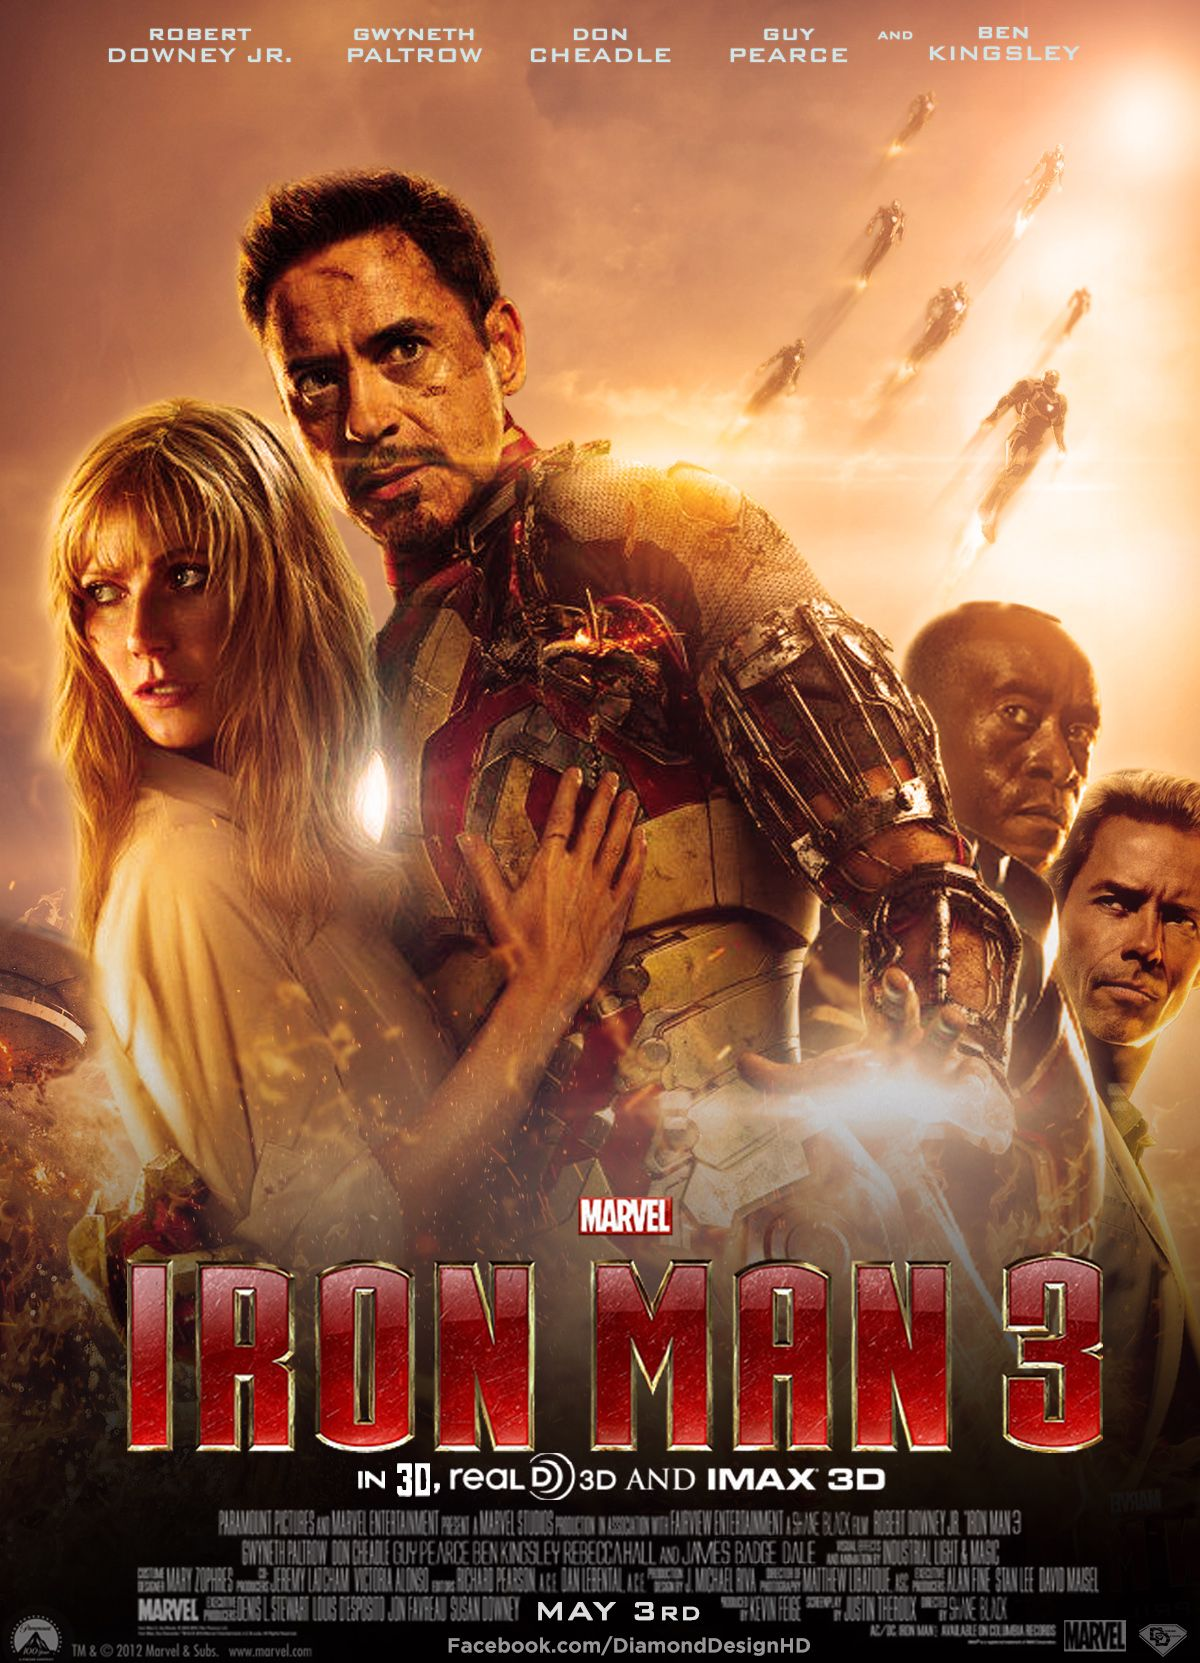 ironman 3 movie posters on Pinterest   18 Pins